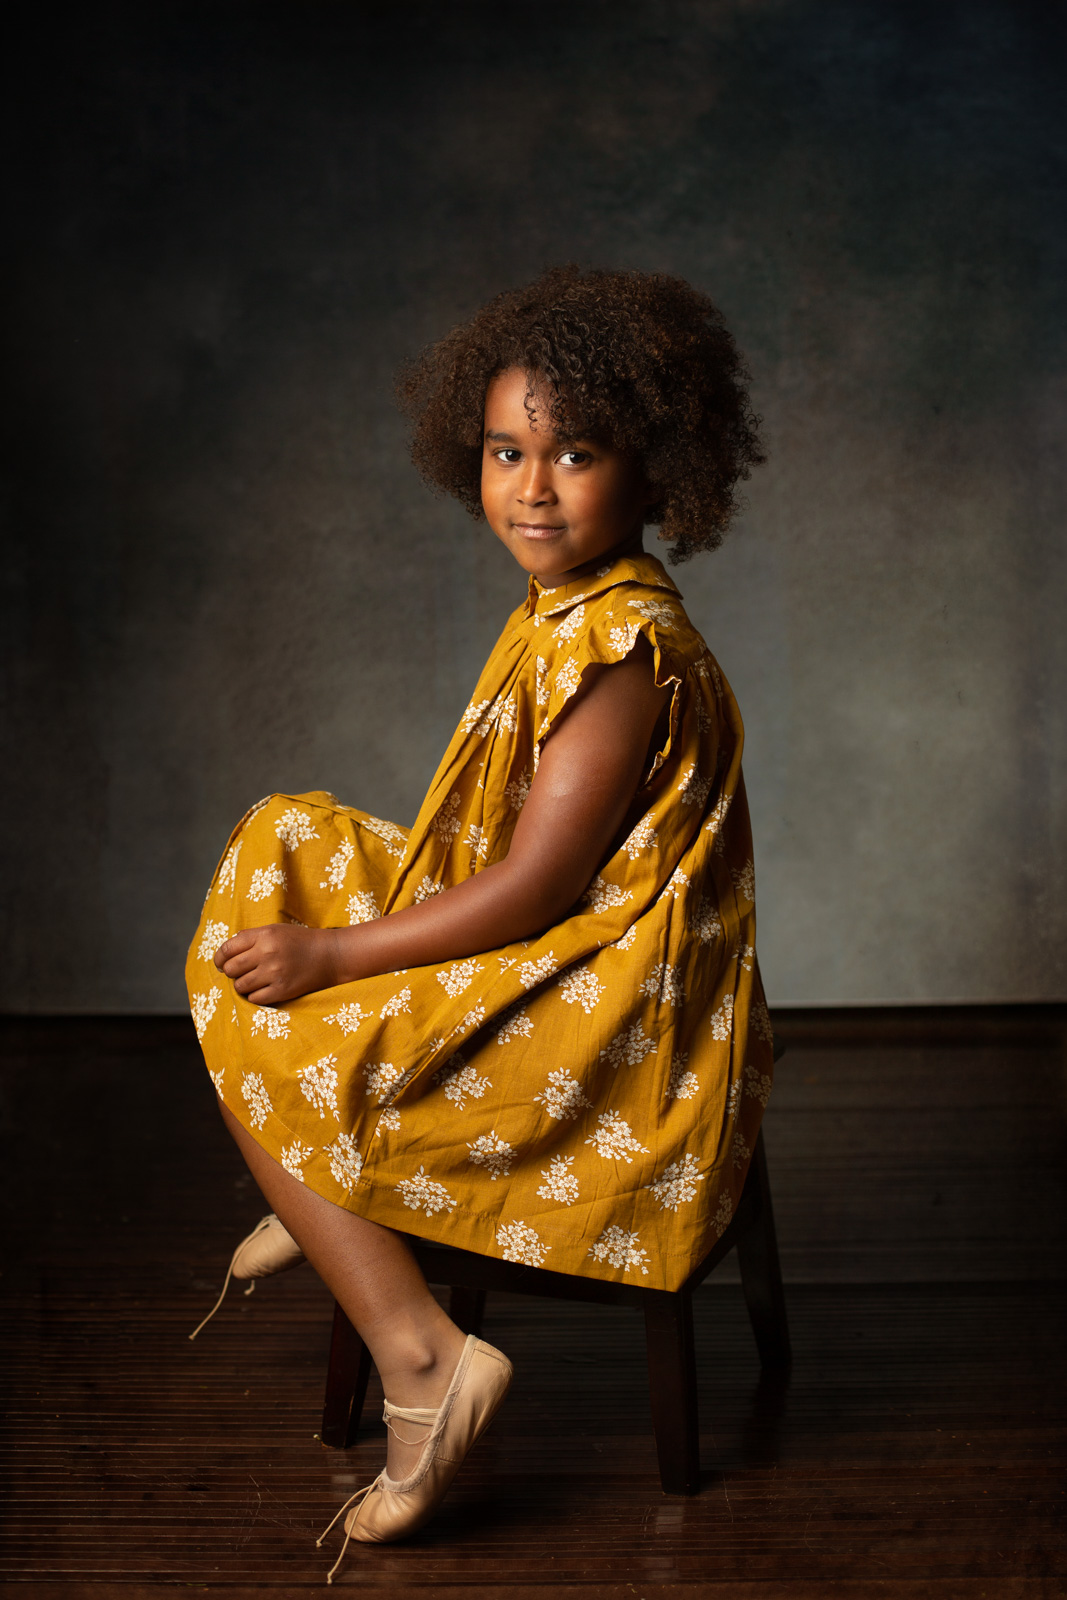 girl in yellow floral dress by leah mcclean the-salted-image-little-cotton-clothes-yellow-portrait